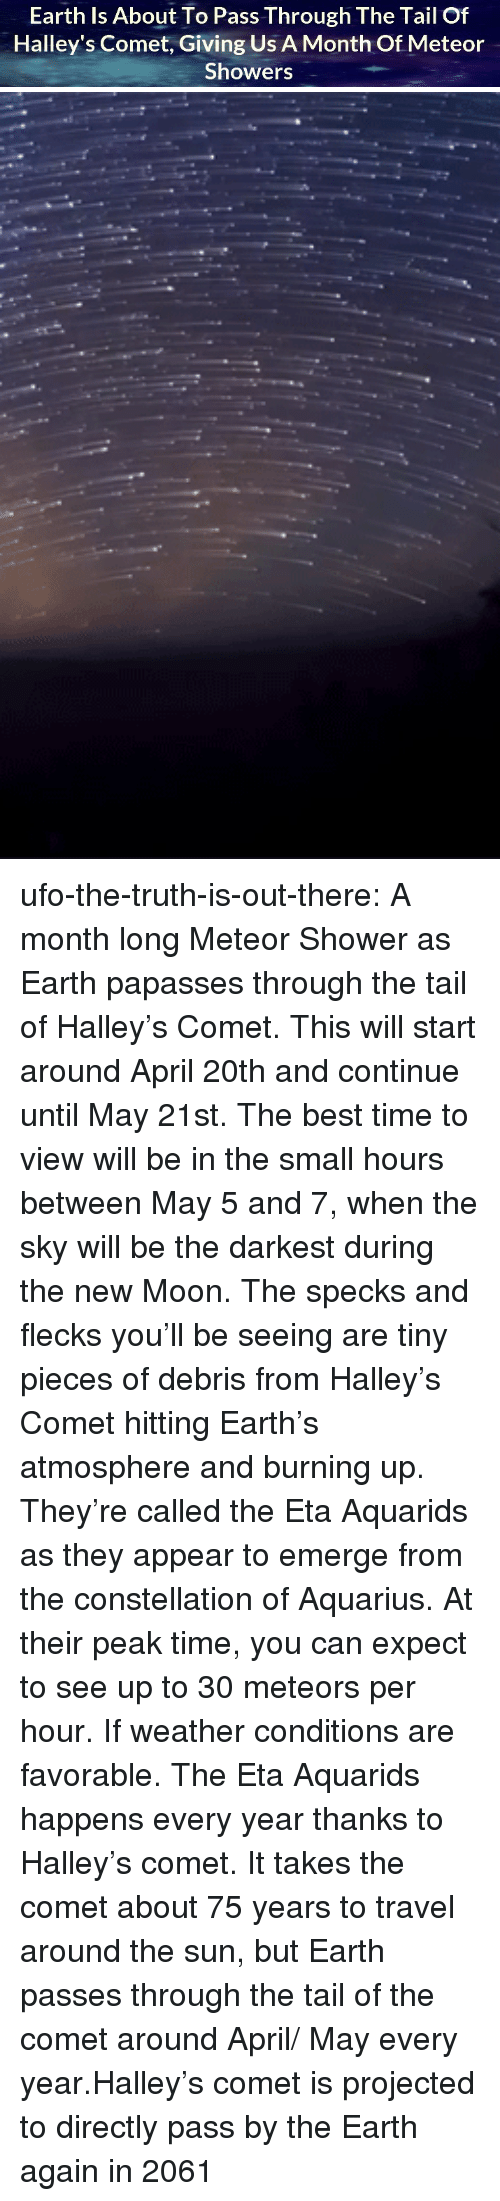 May 5: Earth Is About To Pass Through The Tail Of  Halley's Comet, Giving Us A Month Of Meteor  Showers ufo-the-truth-is-out-there: A month long Meteor Shower as Earth papasses through the tail of Halley's Comet. This will start around April 20th and continue until May 21st. The best time to view will be in the small hours between May 5 and 7, when the sky will be the darkest during the new Moon. The specks and flecks you'll be seeing are tiny pieces of debris from Halley's Comet hitting Earth's atmosphere and burning up. They're called the Eta Aquarids as they appear to emerge from the constellation of Aquarius. At their peak time, you can expect to see up to 30 meteors per hour. If weather conditions are favorable. The Eta Aquarids happens every year thanks to Halley's comet. It takes the comet about 75 years to travel around the sun, but Earth passes through the tail of the comet around April/ May every year.Halley's comet is projected to directly pass by the Earth again in 2061